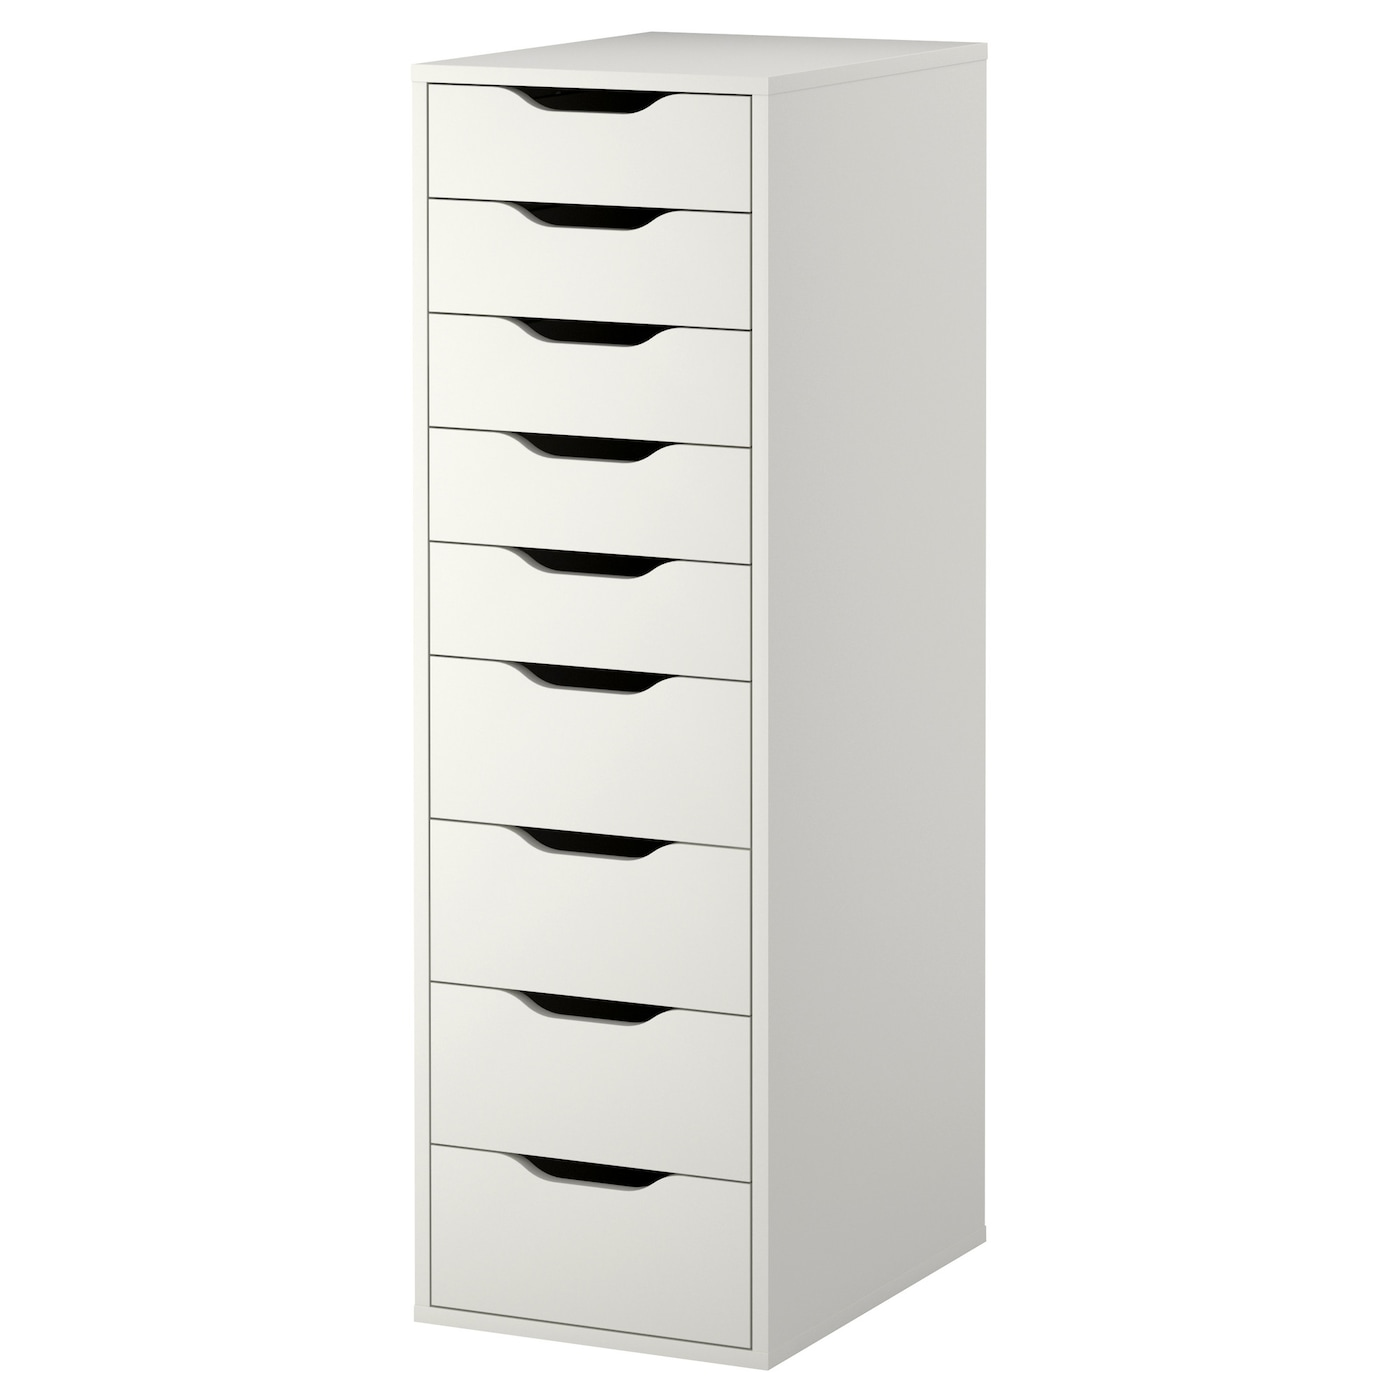 alex drawer unit with 9 drawers white 36 x 116 cm ikea. Black Bedroom Furniture Sets. Home Design Ideas